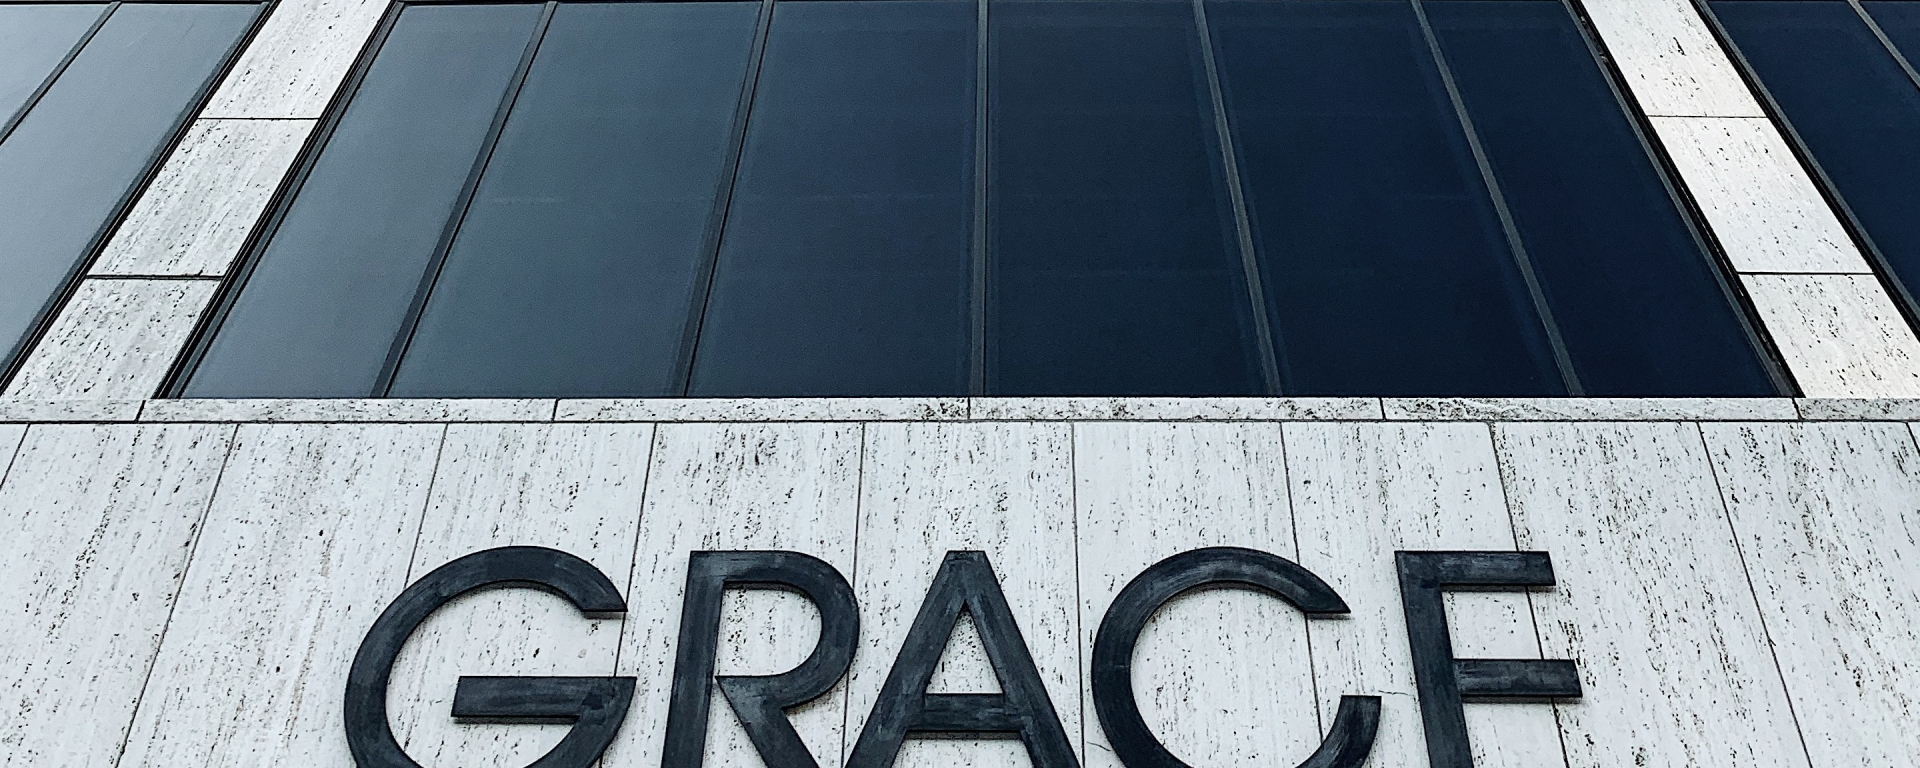 """Buidling that says """"Grace"""" on it."""